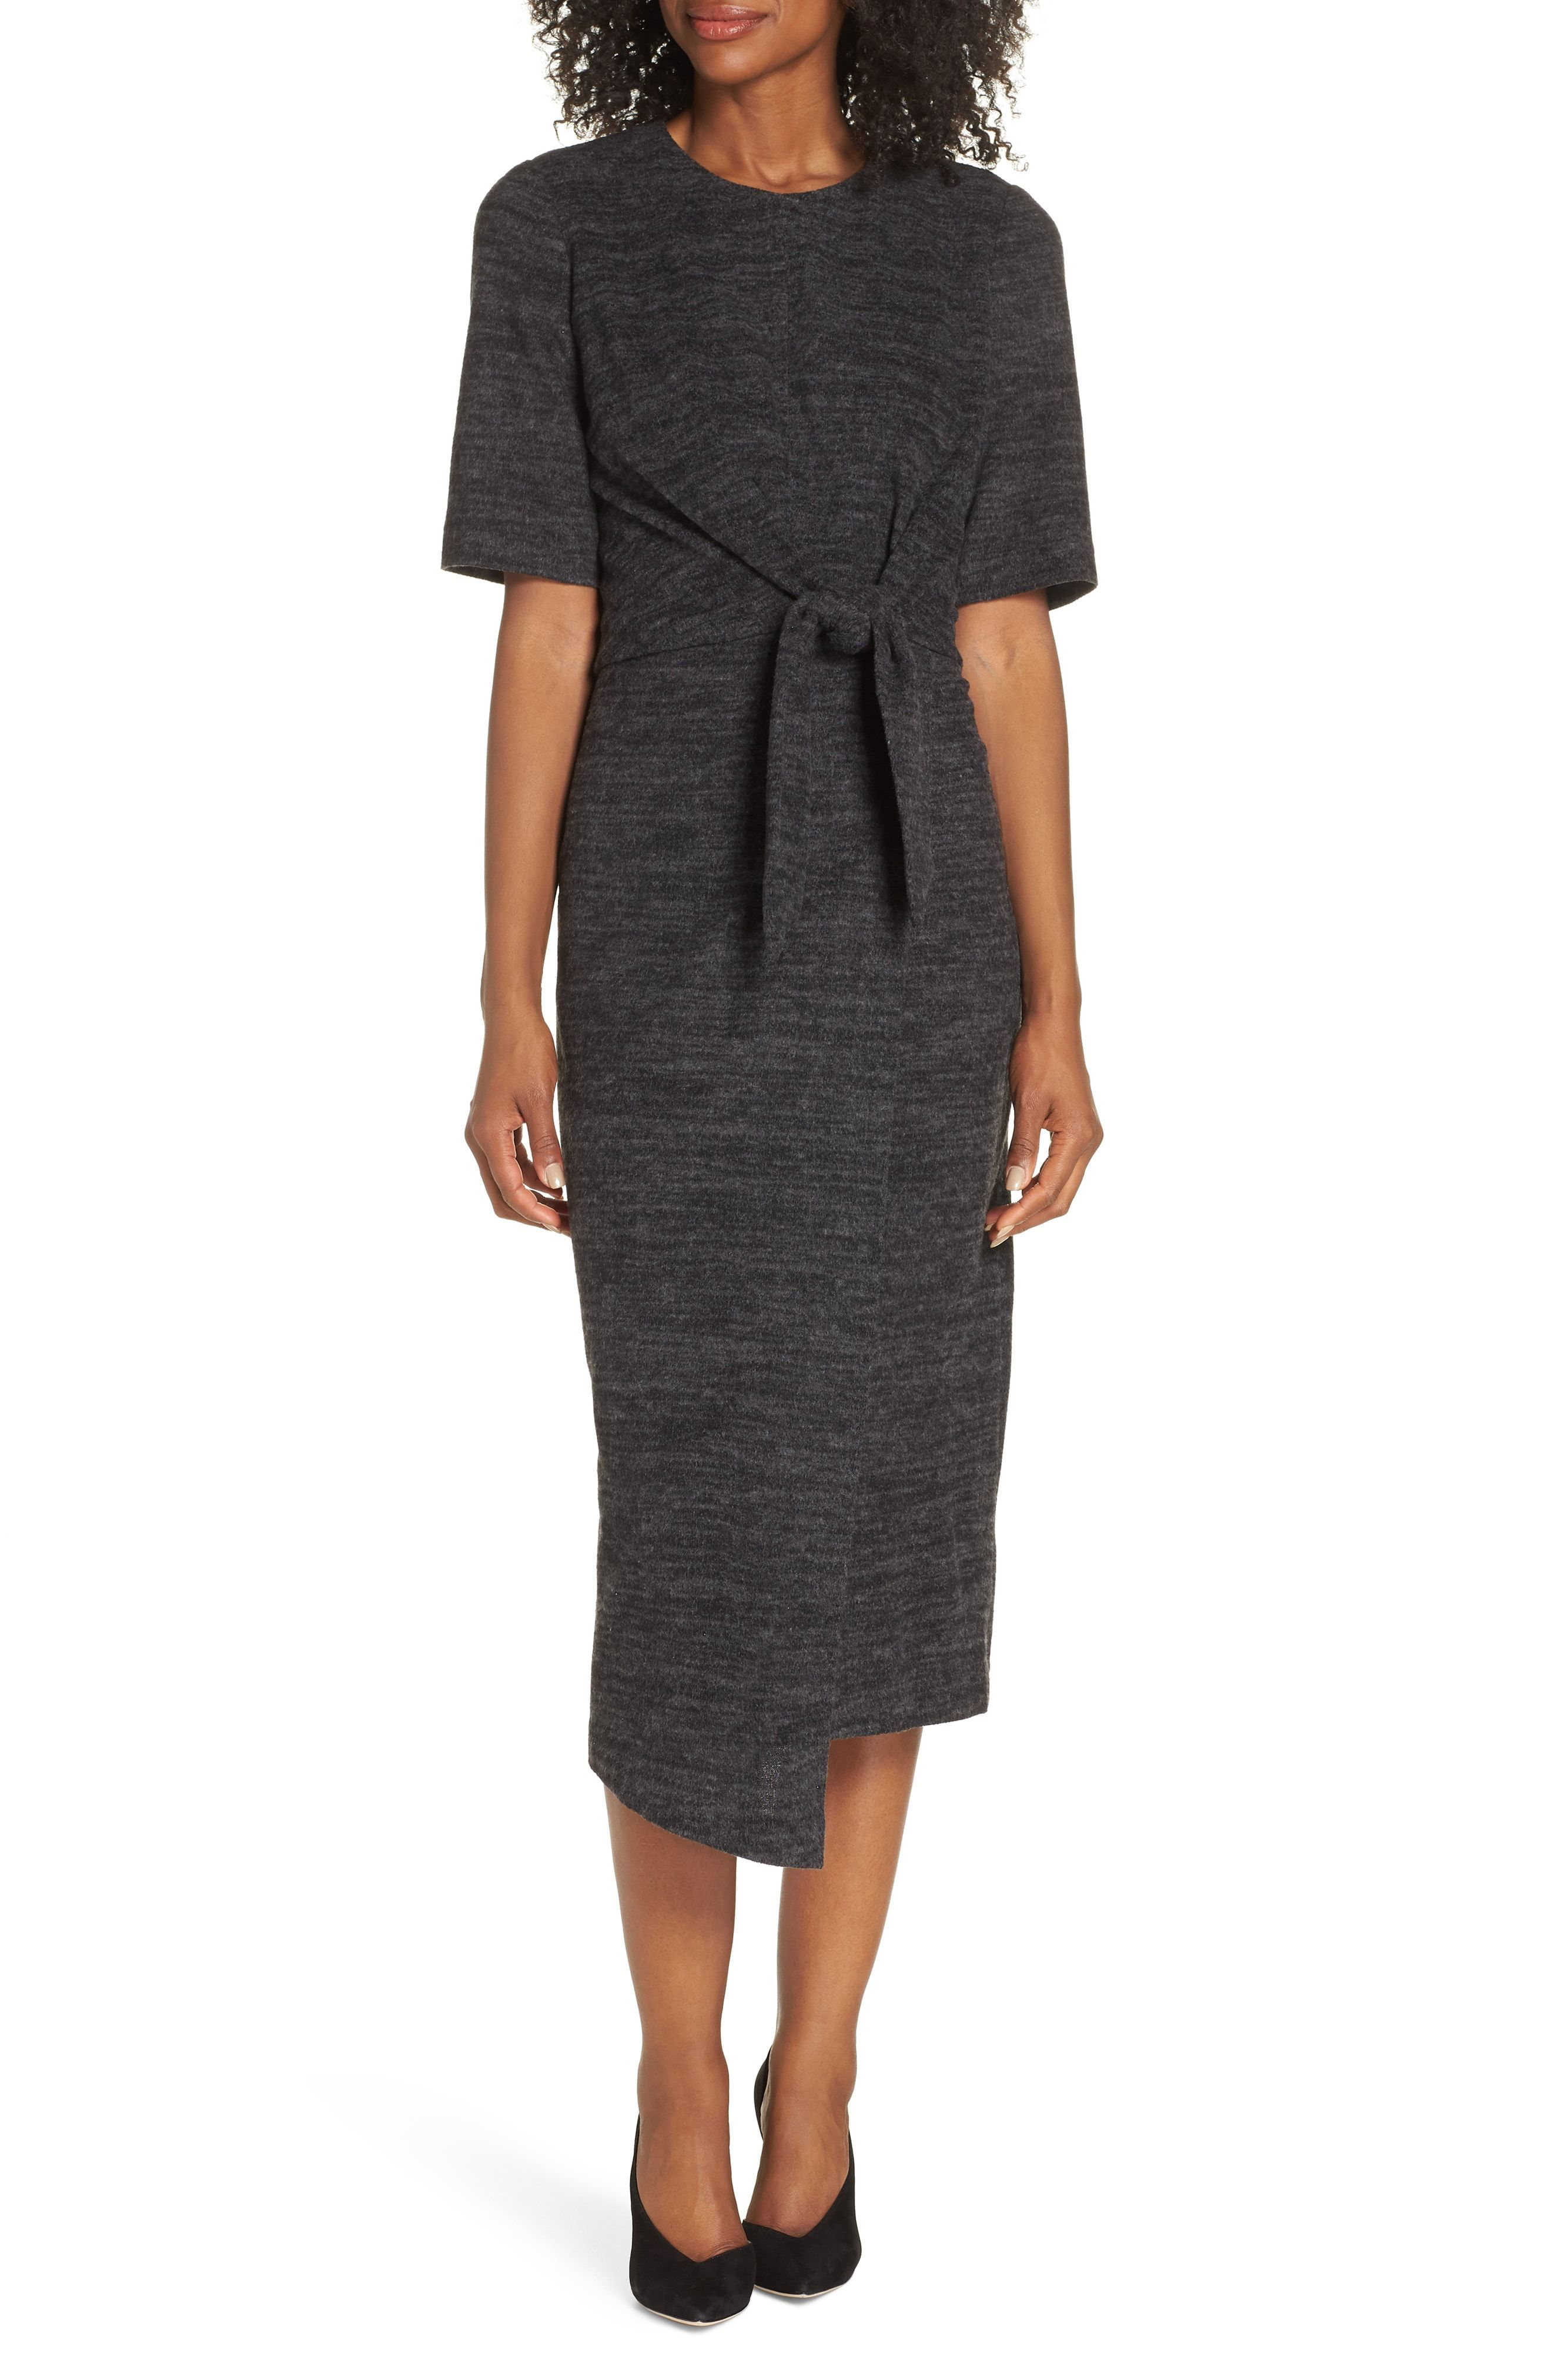 359fedbeff3b Maggy London Tie Front Midi Dress available at  Nordstrom Love this style  and the color is perfect for work!